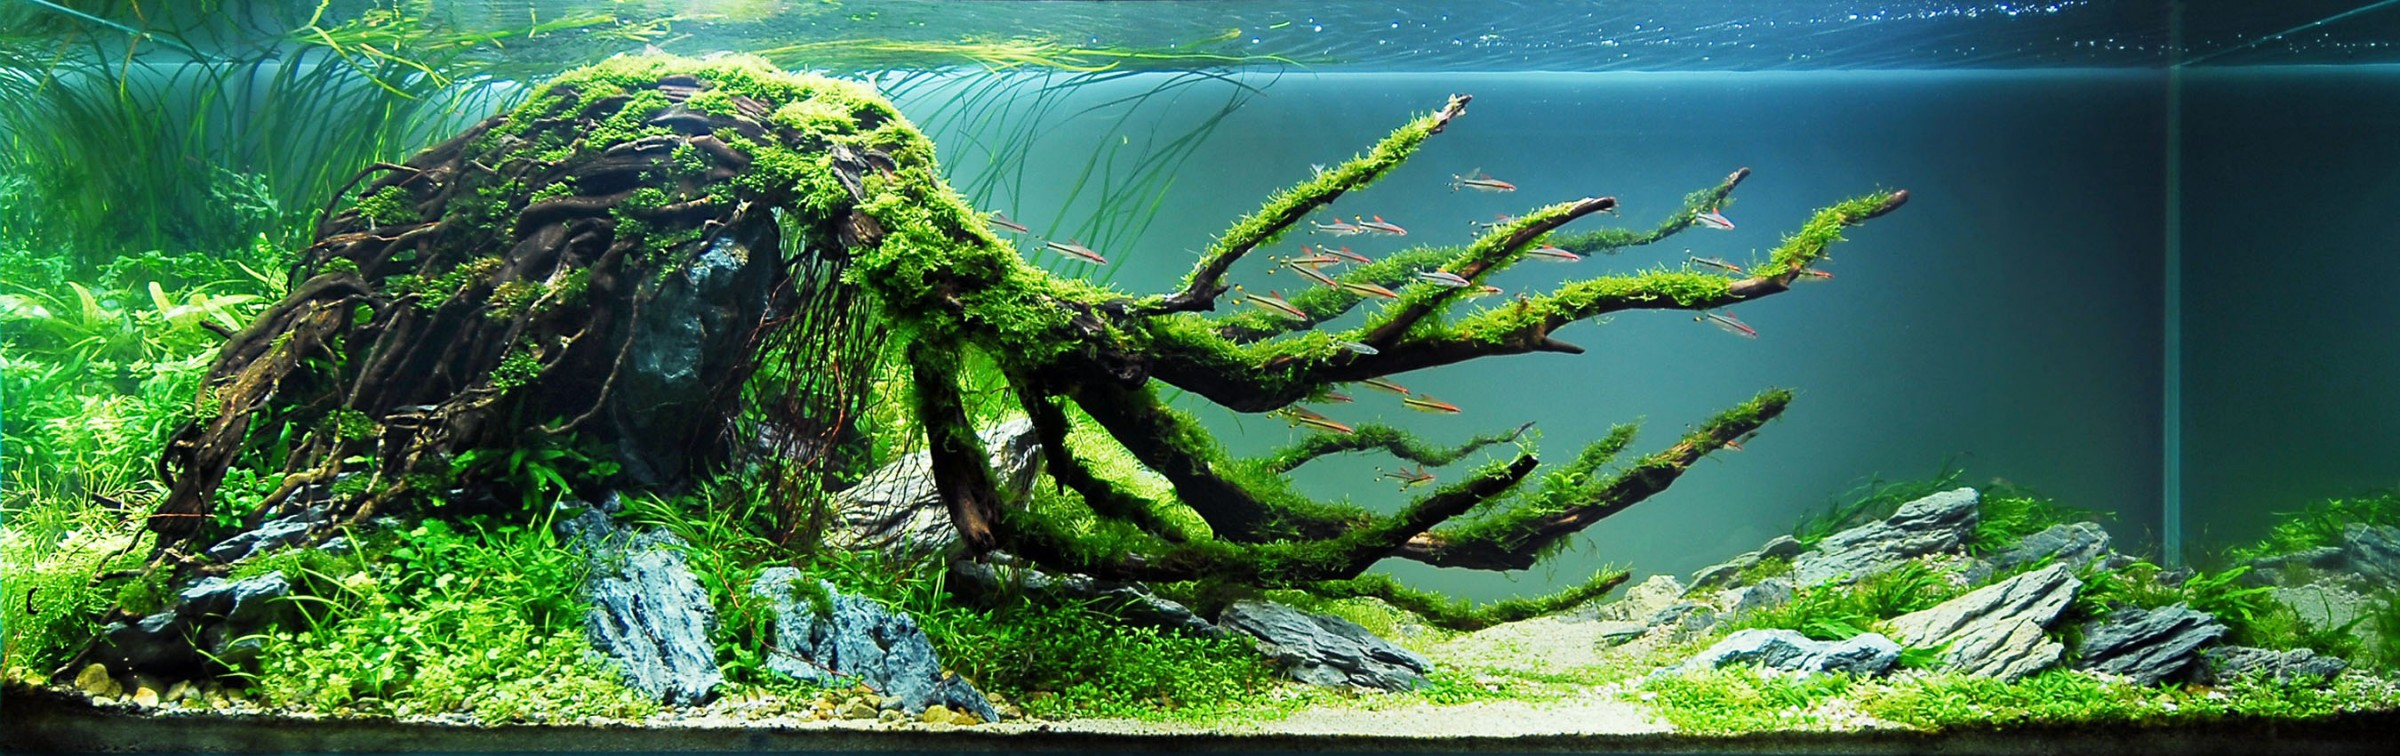 an Aquascape by the late, great Takashi Amano in the nature style that he founded